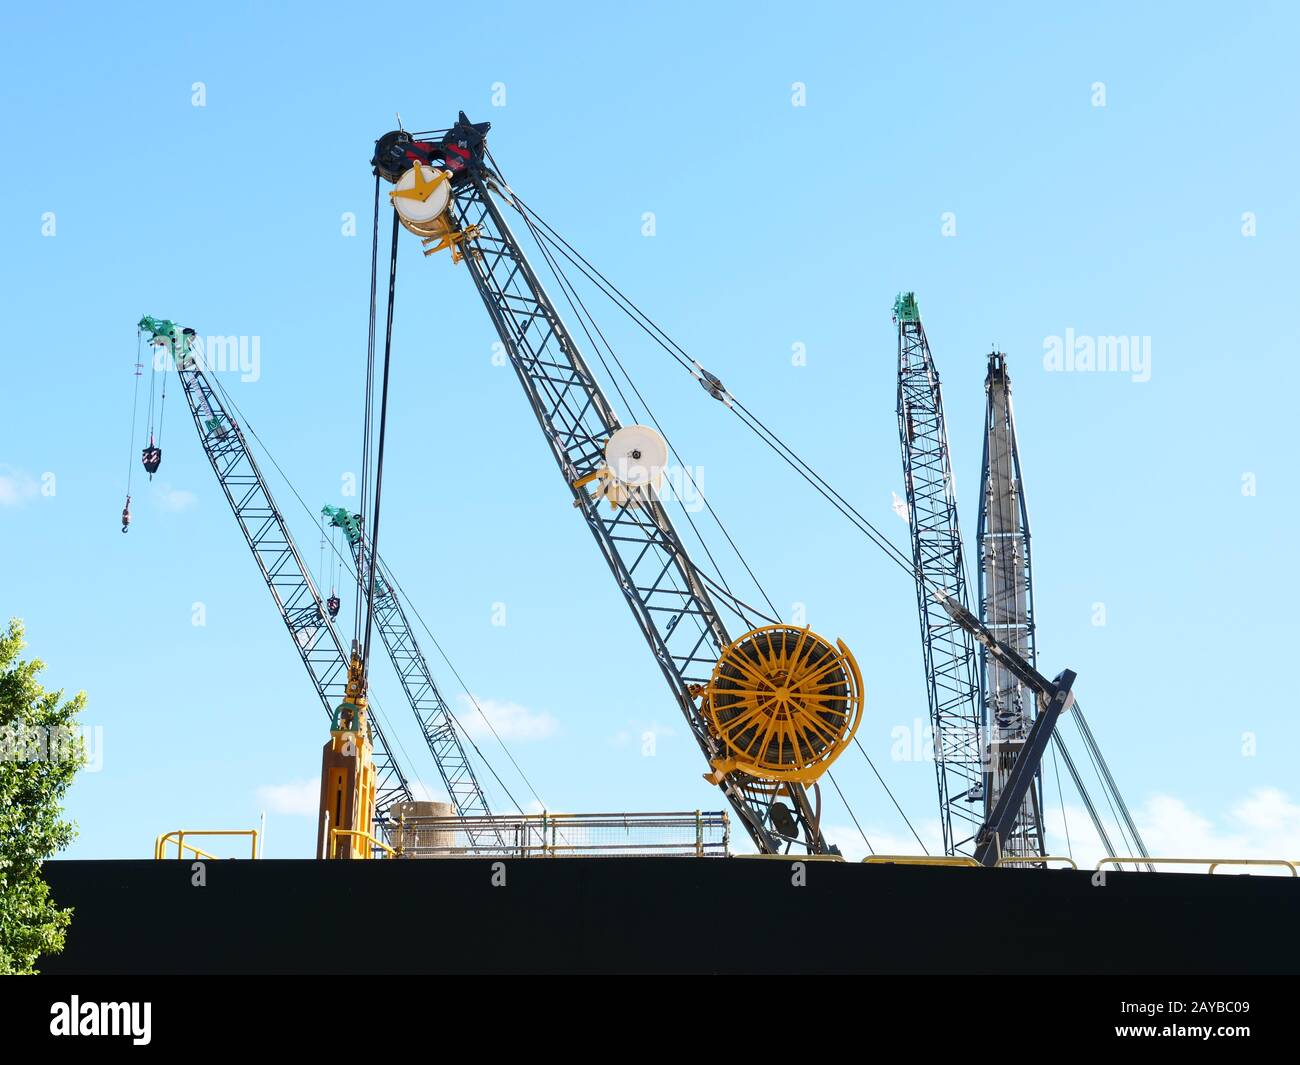 Unusual construction crane seen in the harbour area of Perth Australia on a construction site. Stock Photo